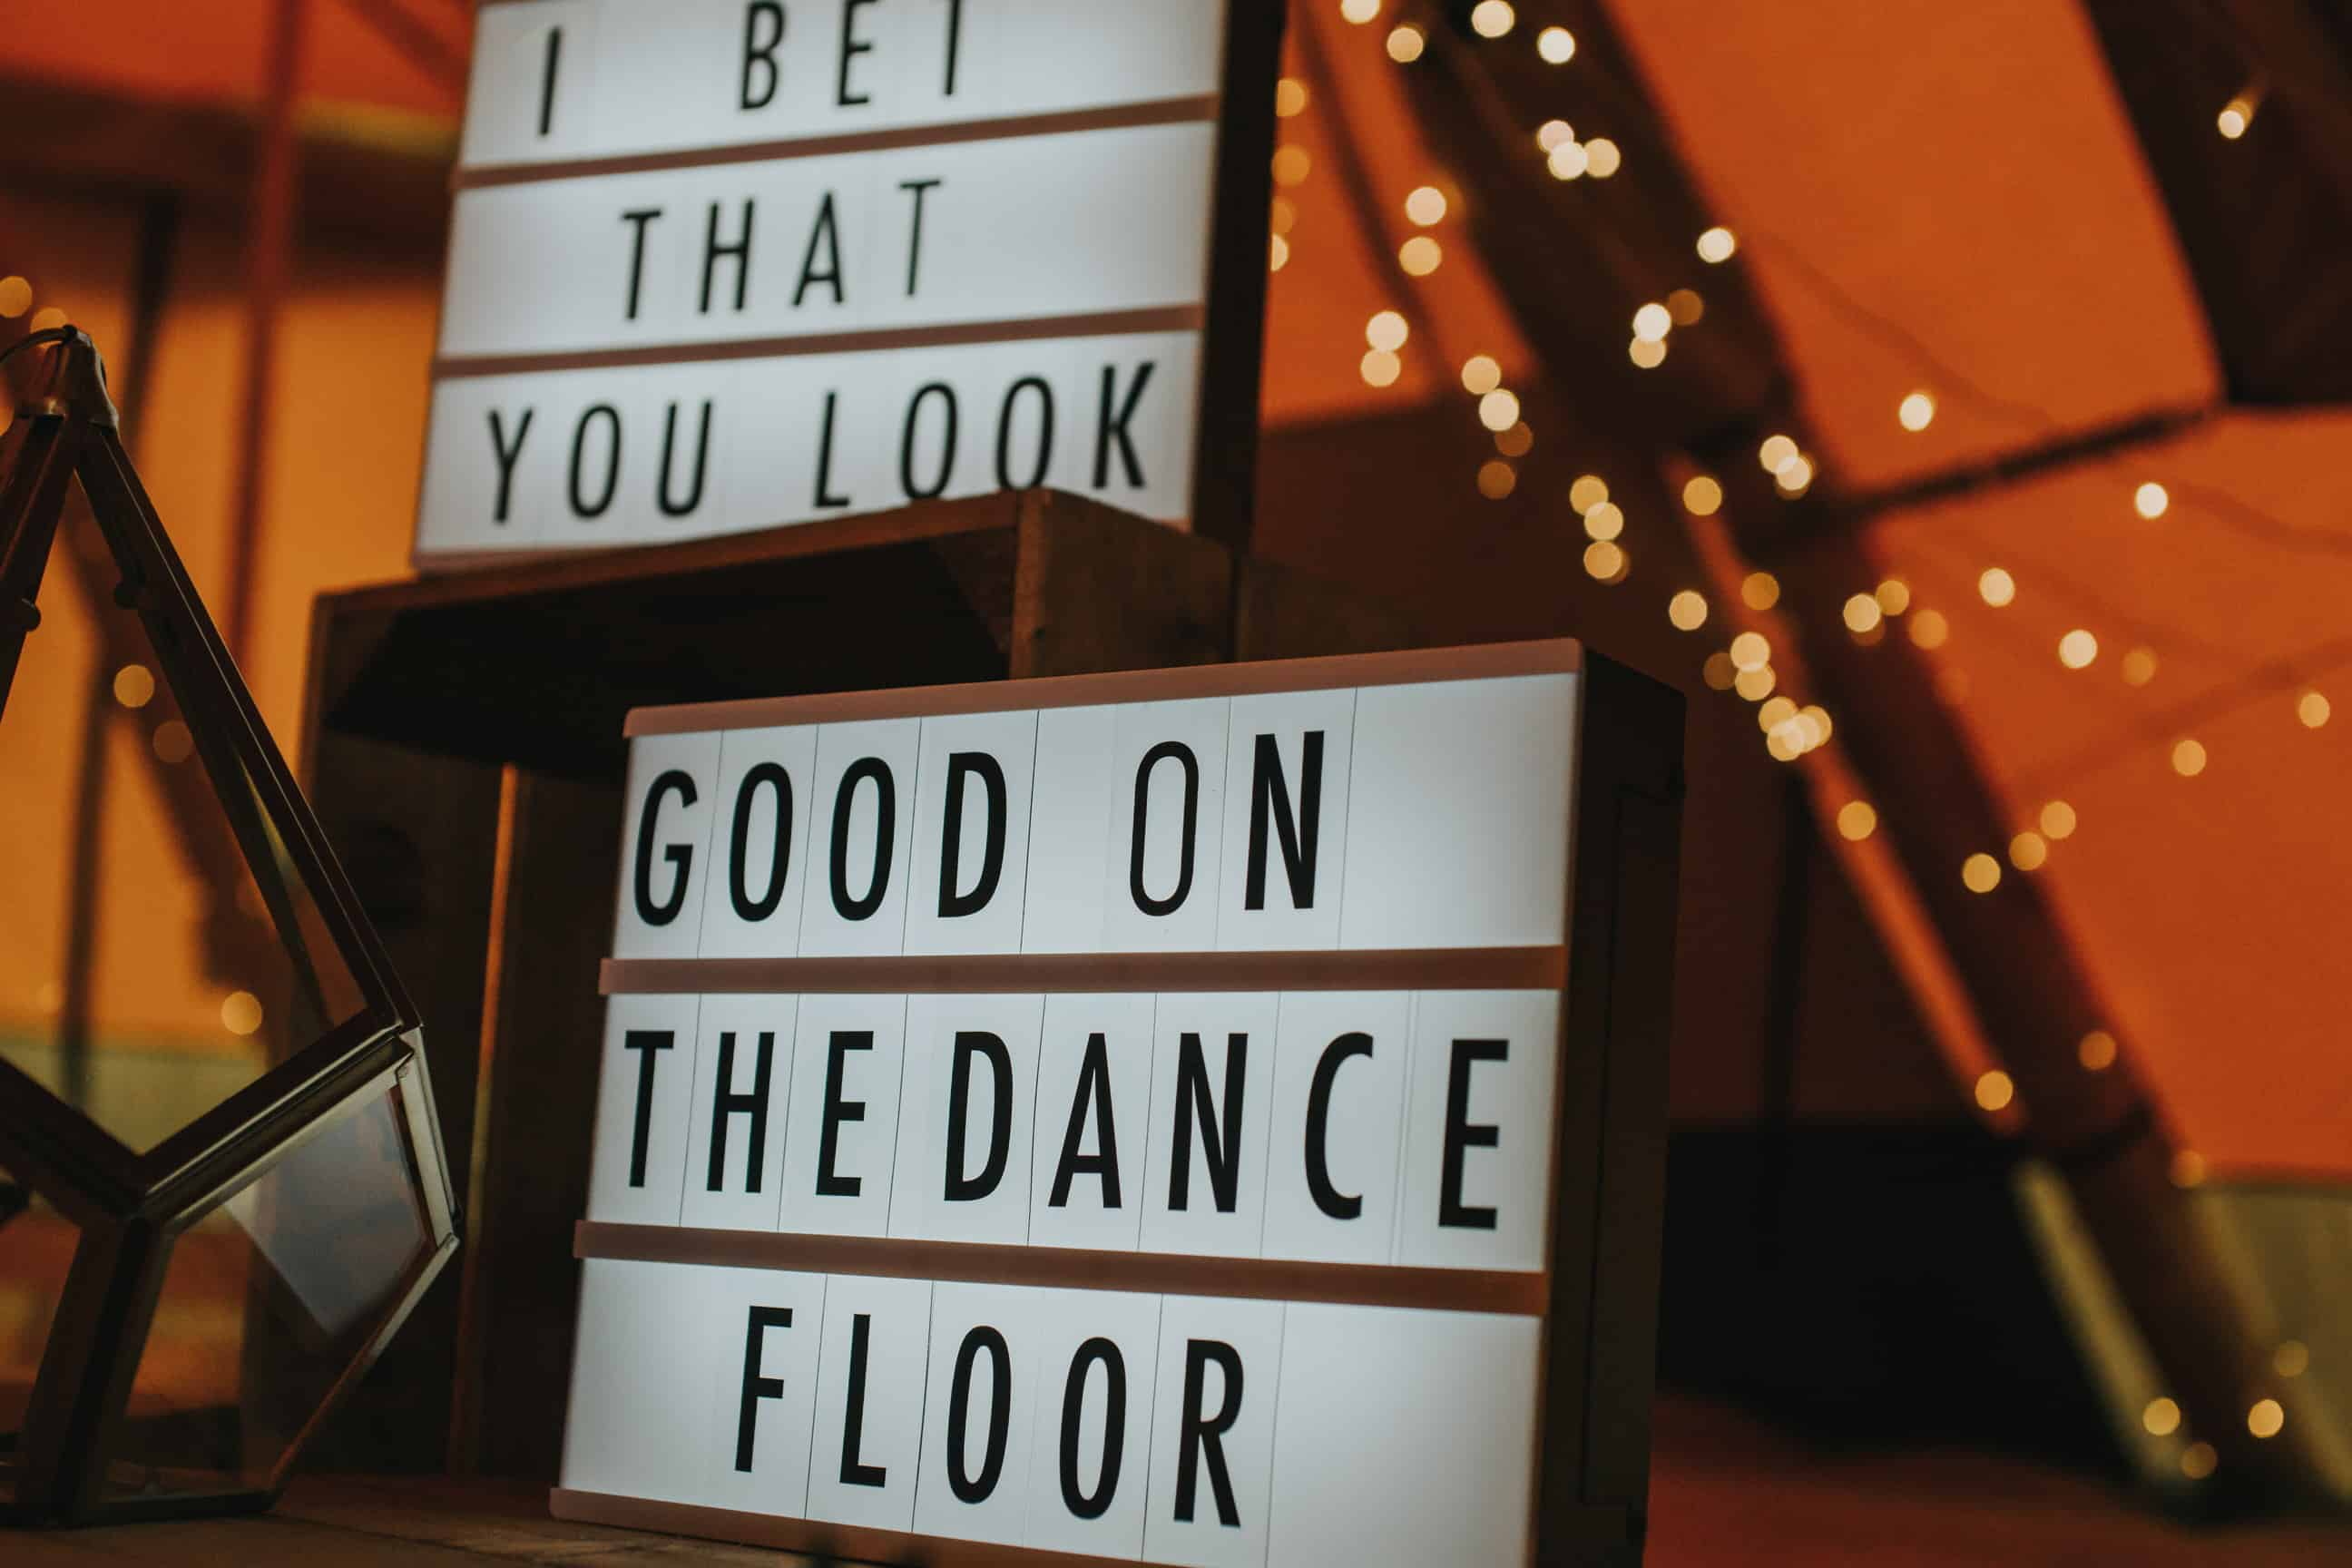 """Light box """"I bet you look good on the dance floor"""" - by Sami Tipi captured by Ed Brown Photography"""